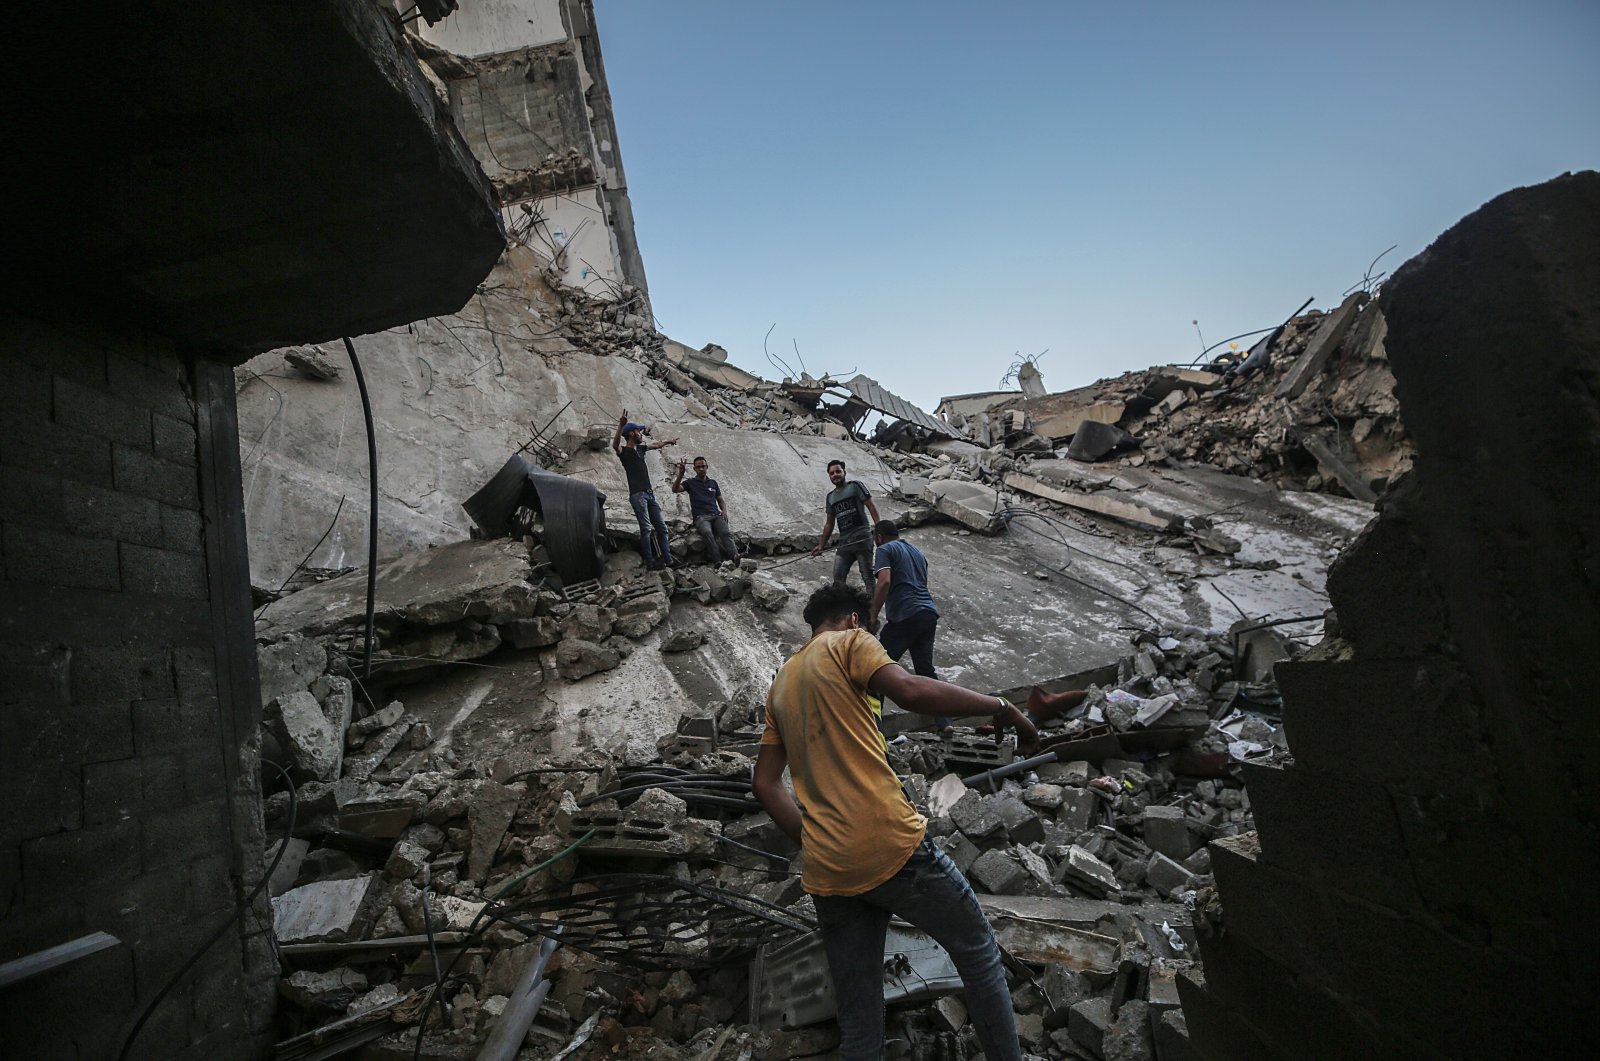 Palestinians inspect the rubble of their destroyed house after Israeli airstrikes, in Gaza City, 19 May 2021. (EPA Photo)